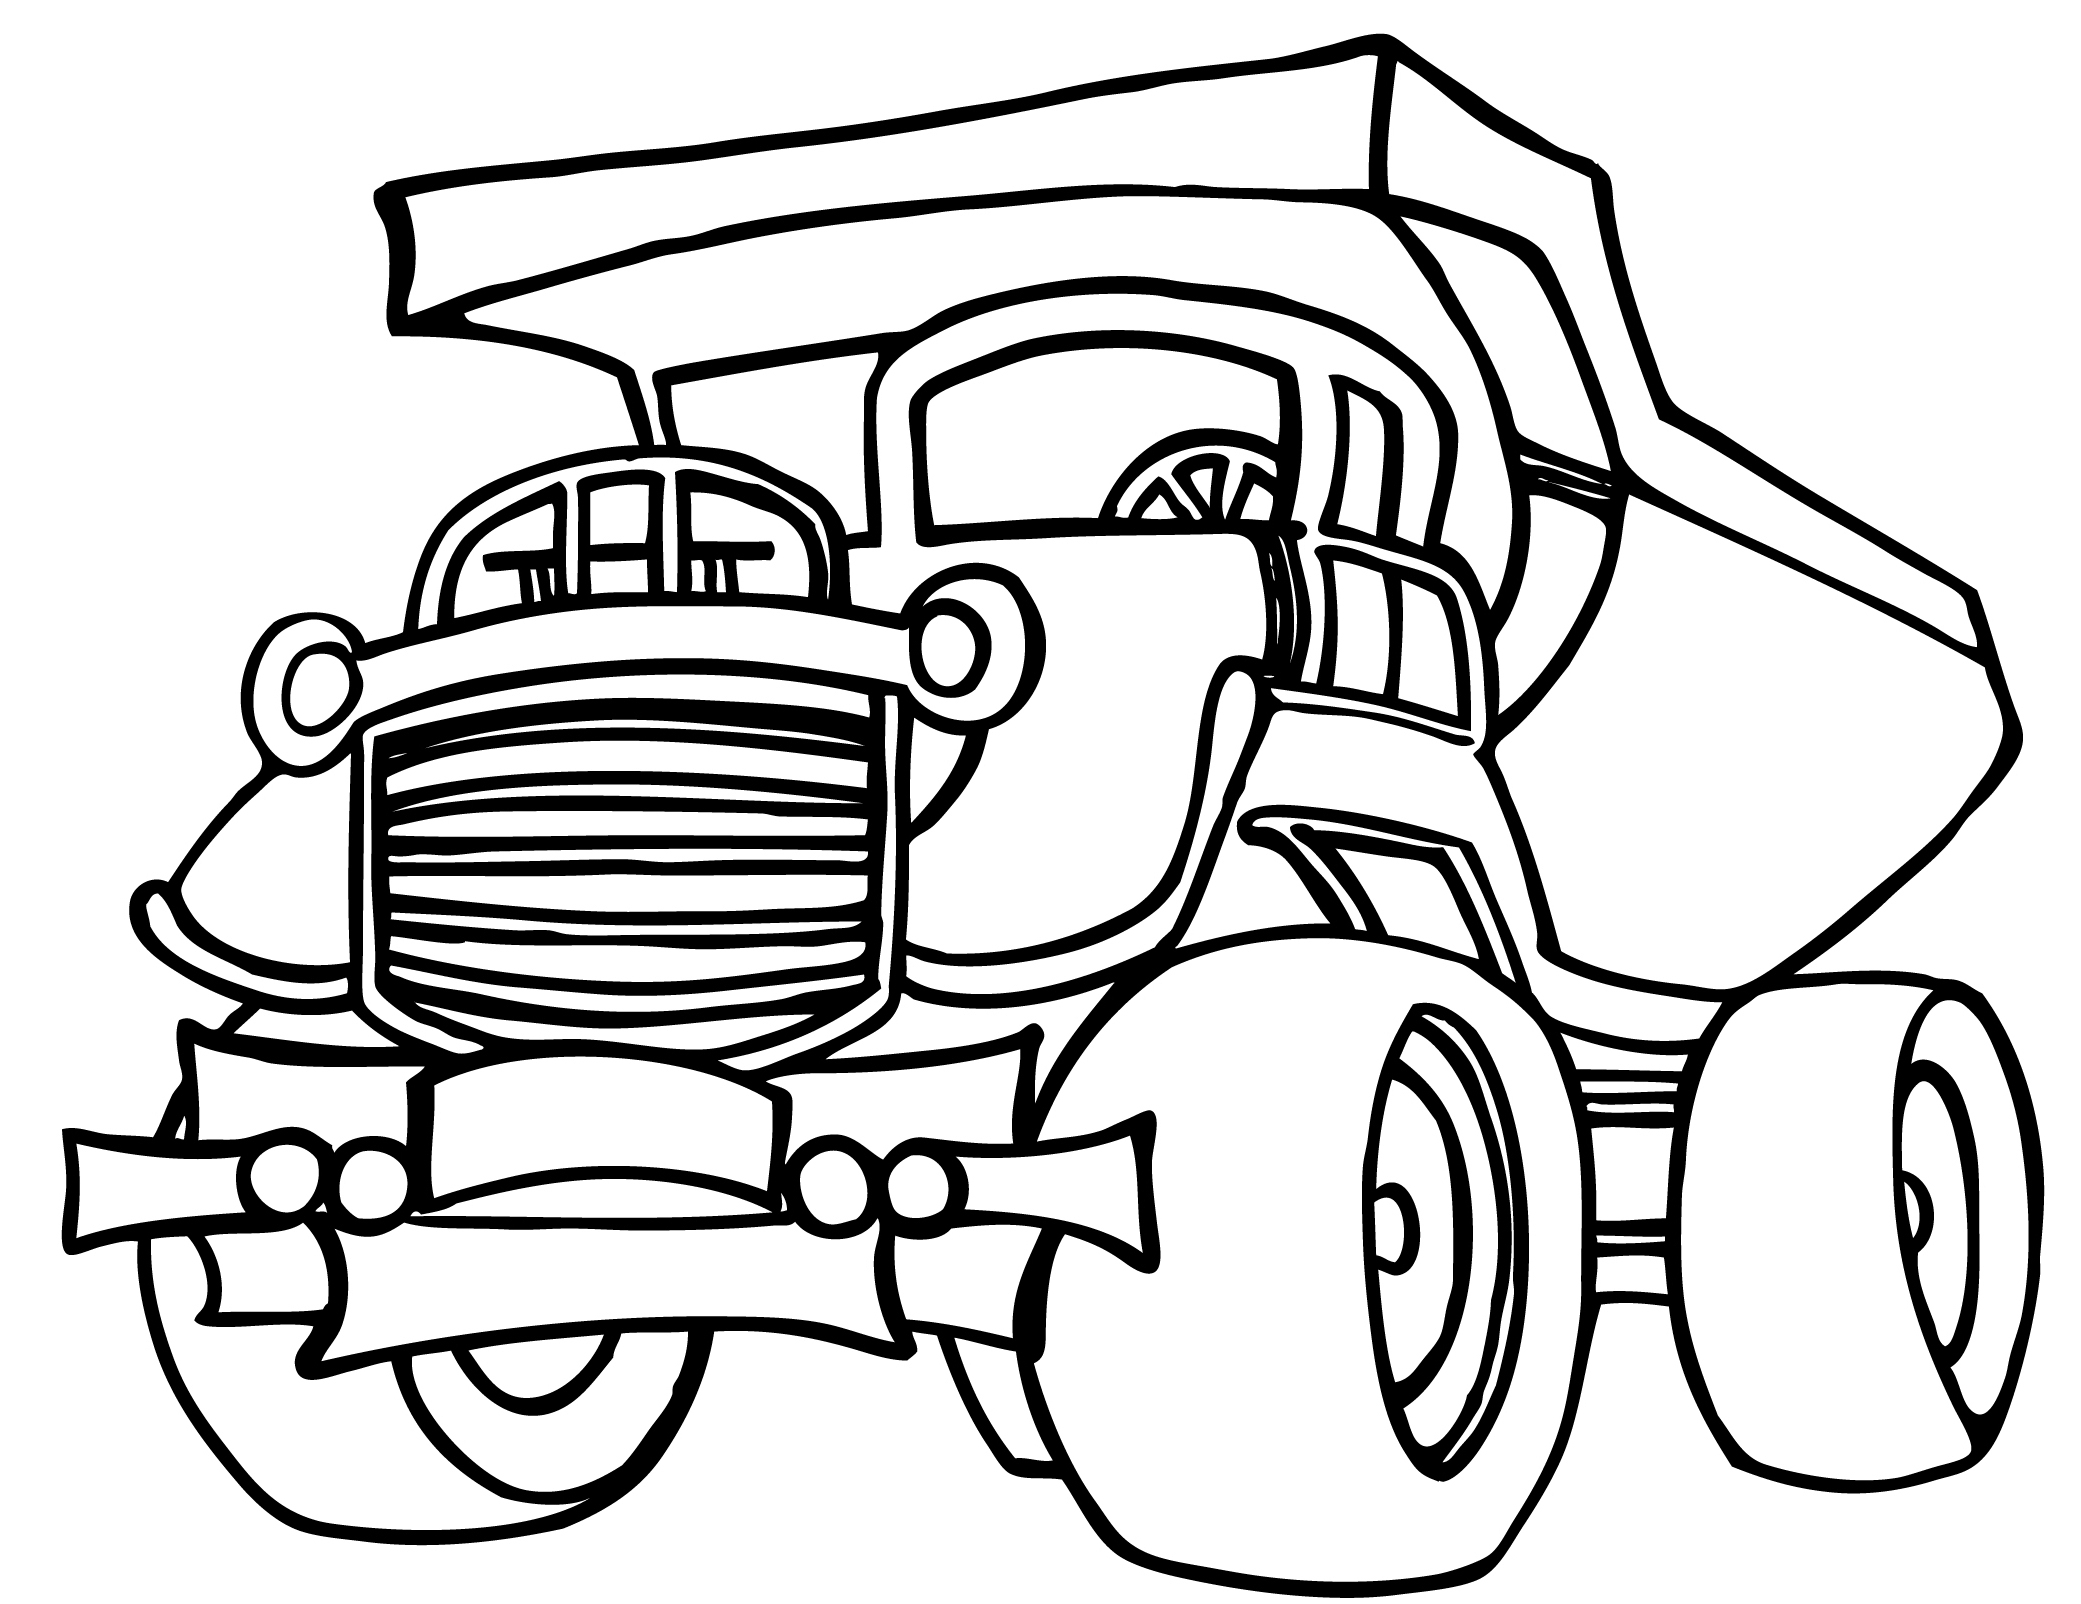 garbage truck coloring page - how to draw a garbage truck